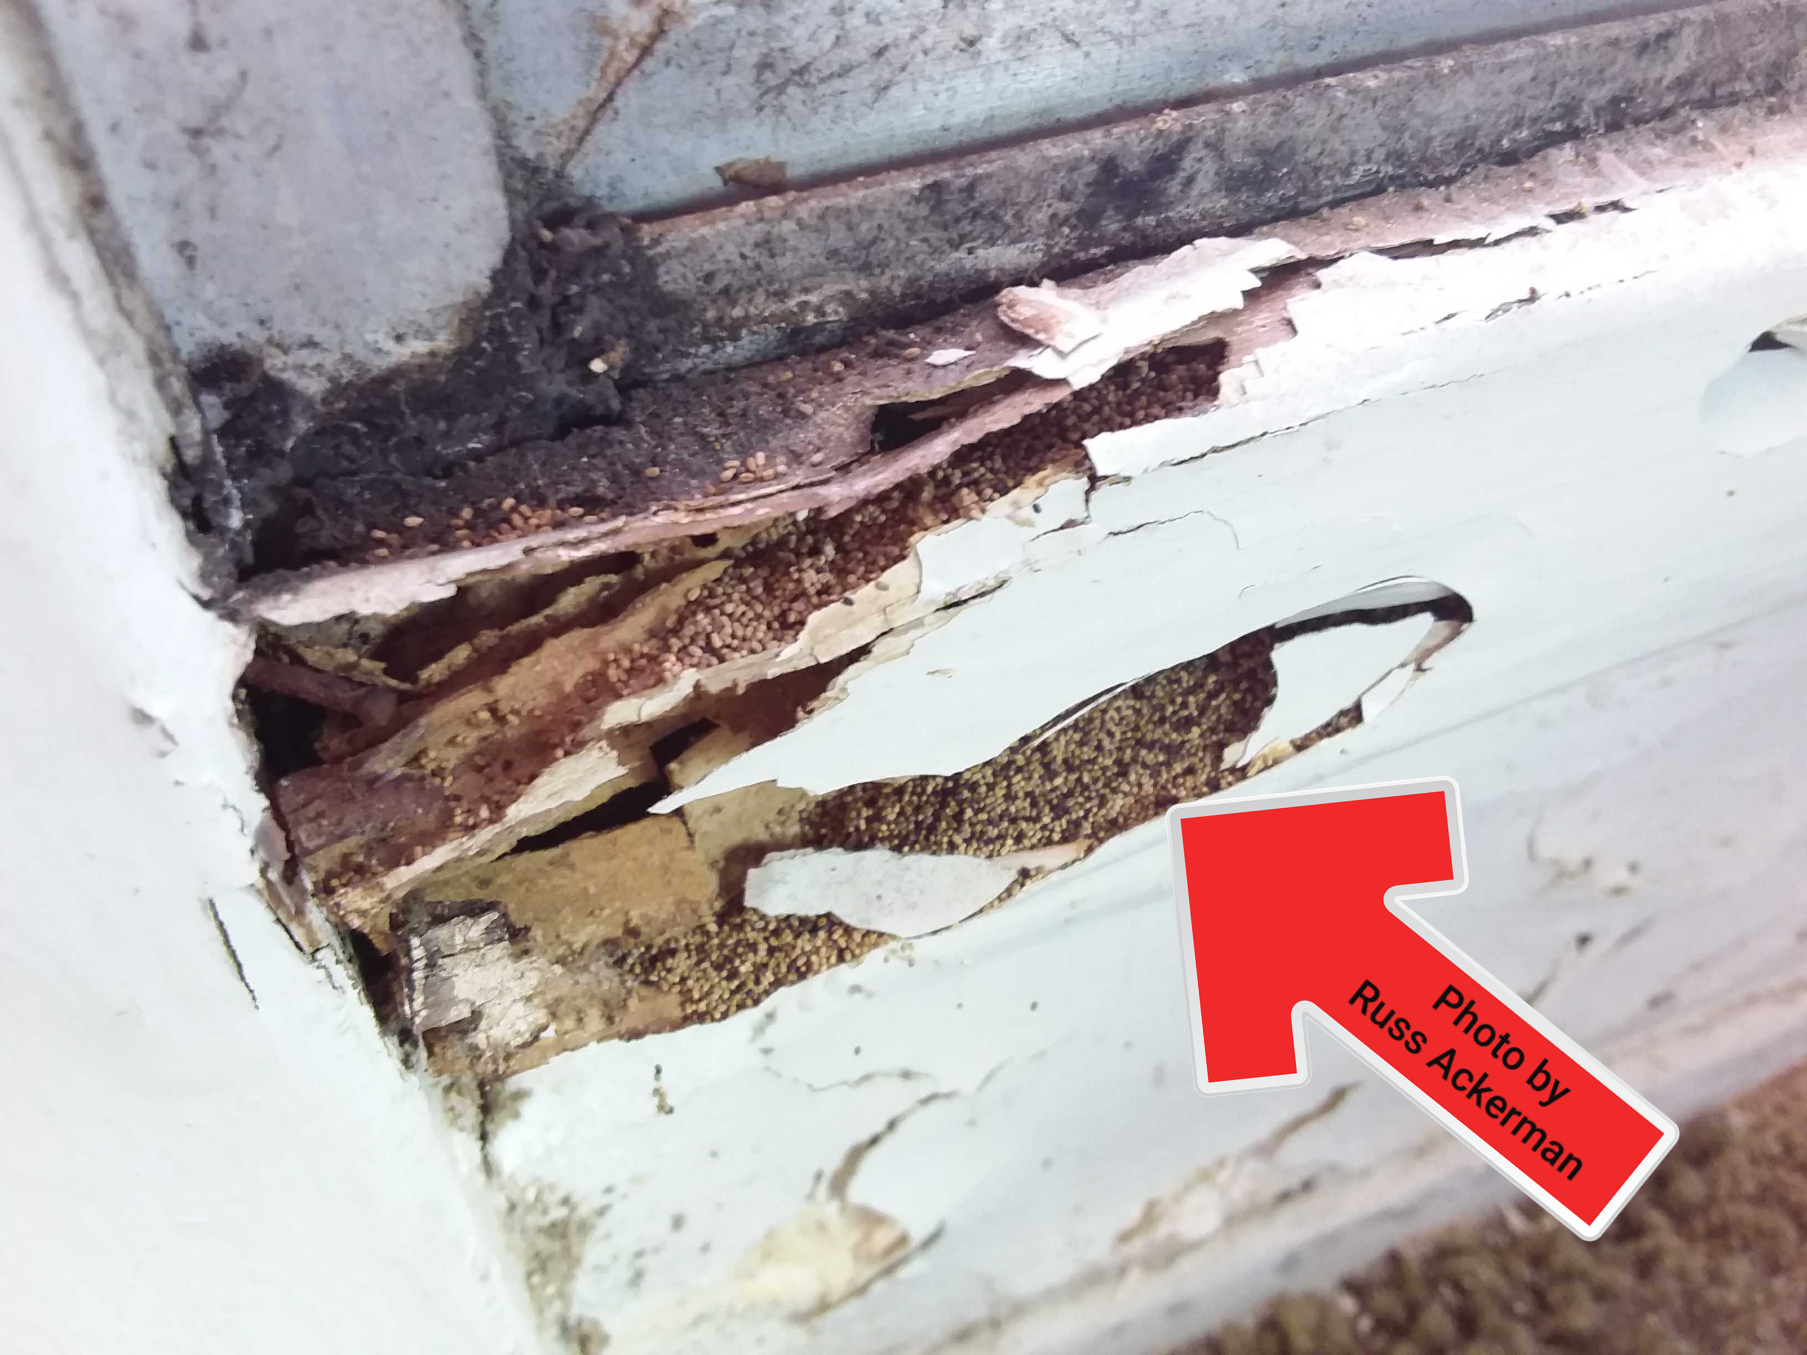 This wooden window trim appears totally rotted out, a closer look and appears filled with sand. Drywood termite damage.